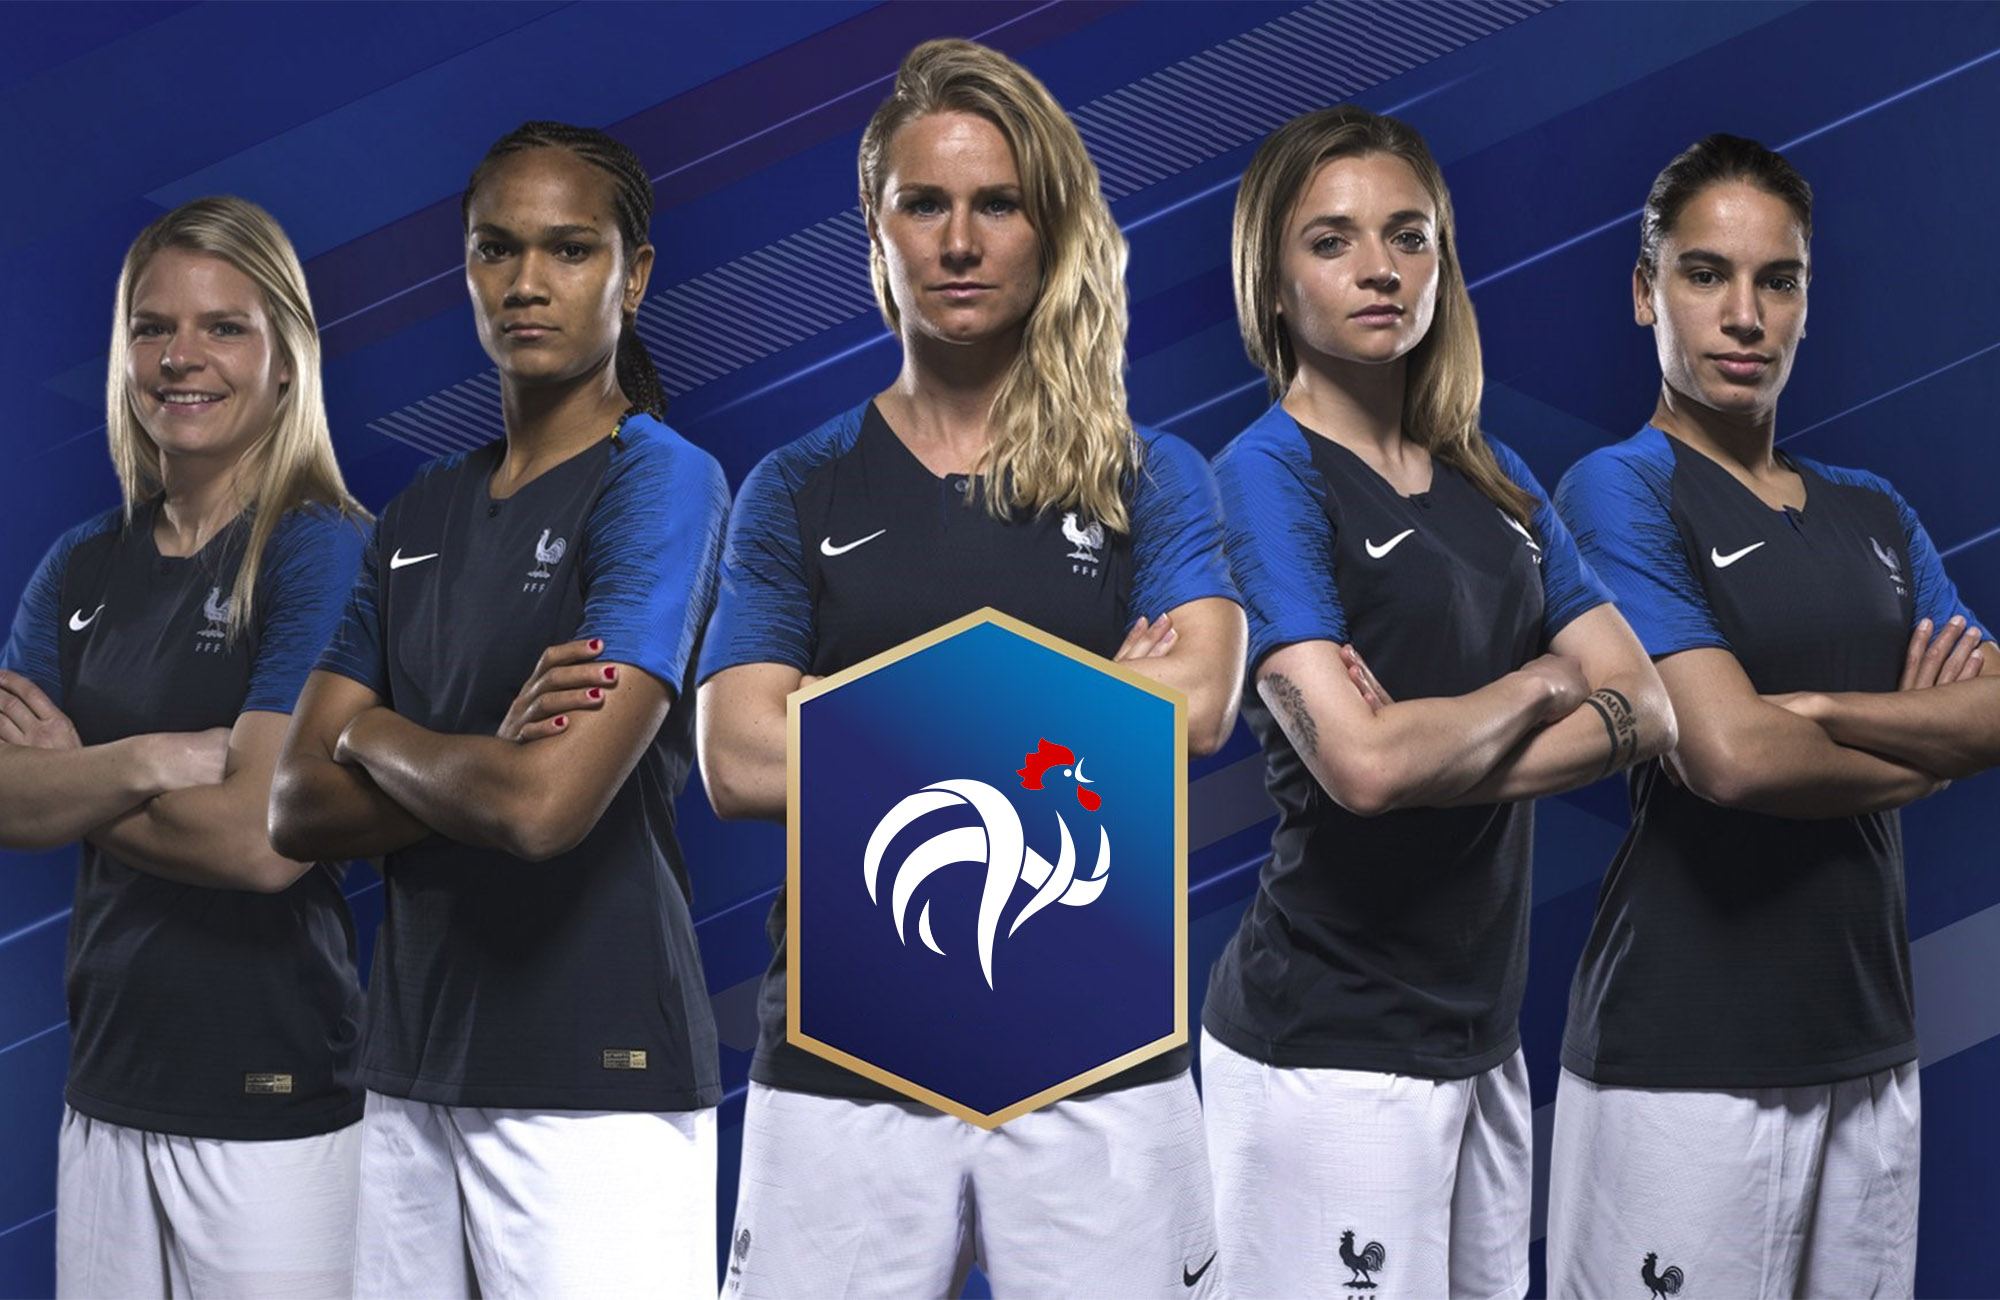 coupe du monde féminine de football france 2019